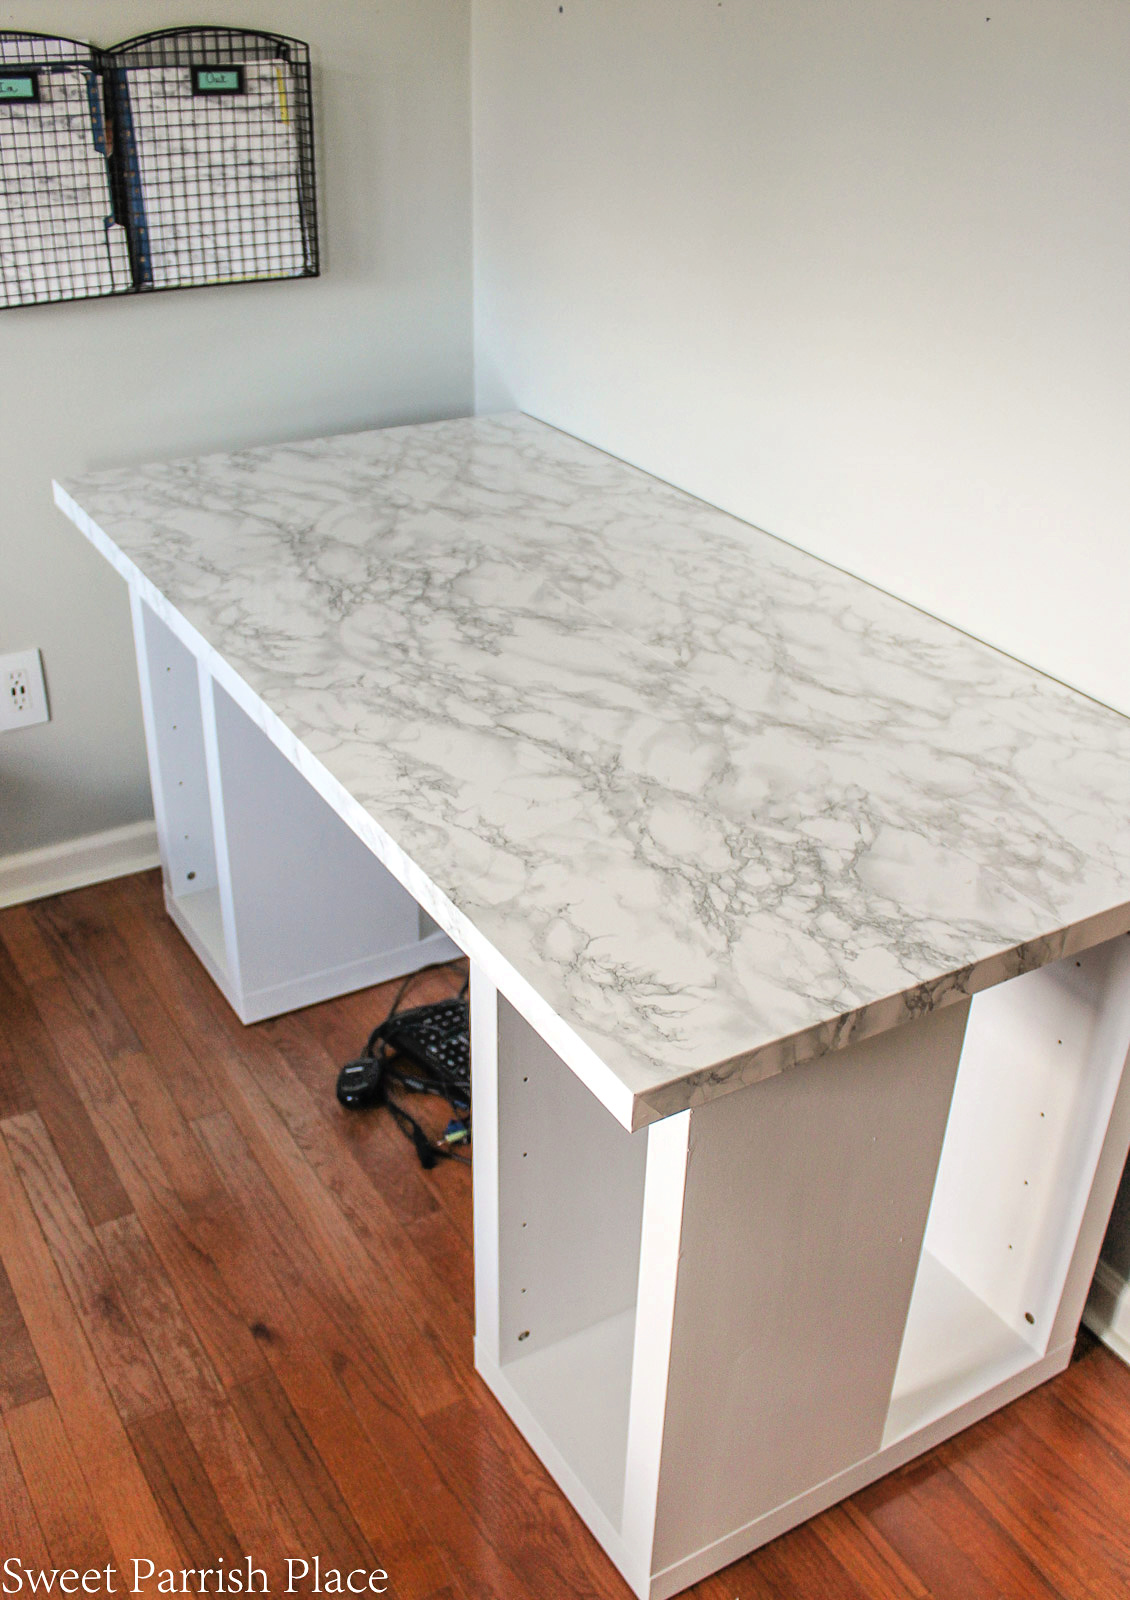 Ikea desk top with marble contact paper applied